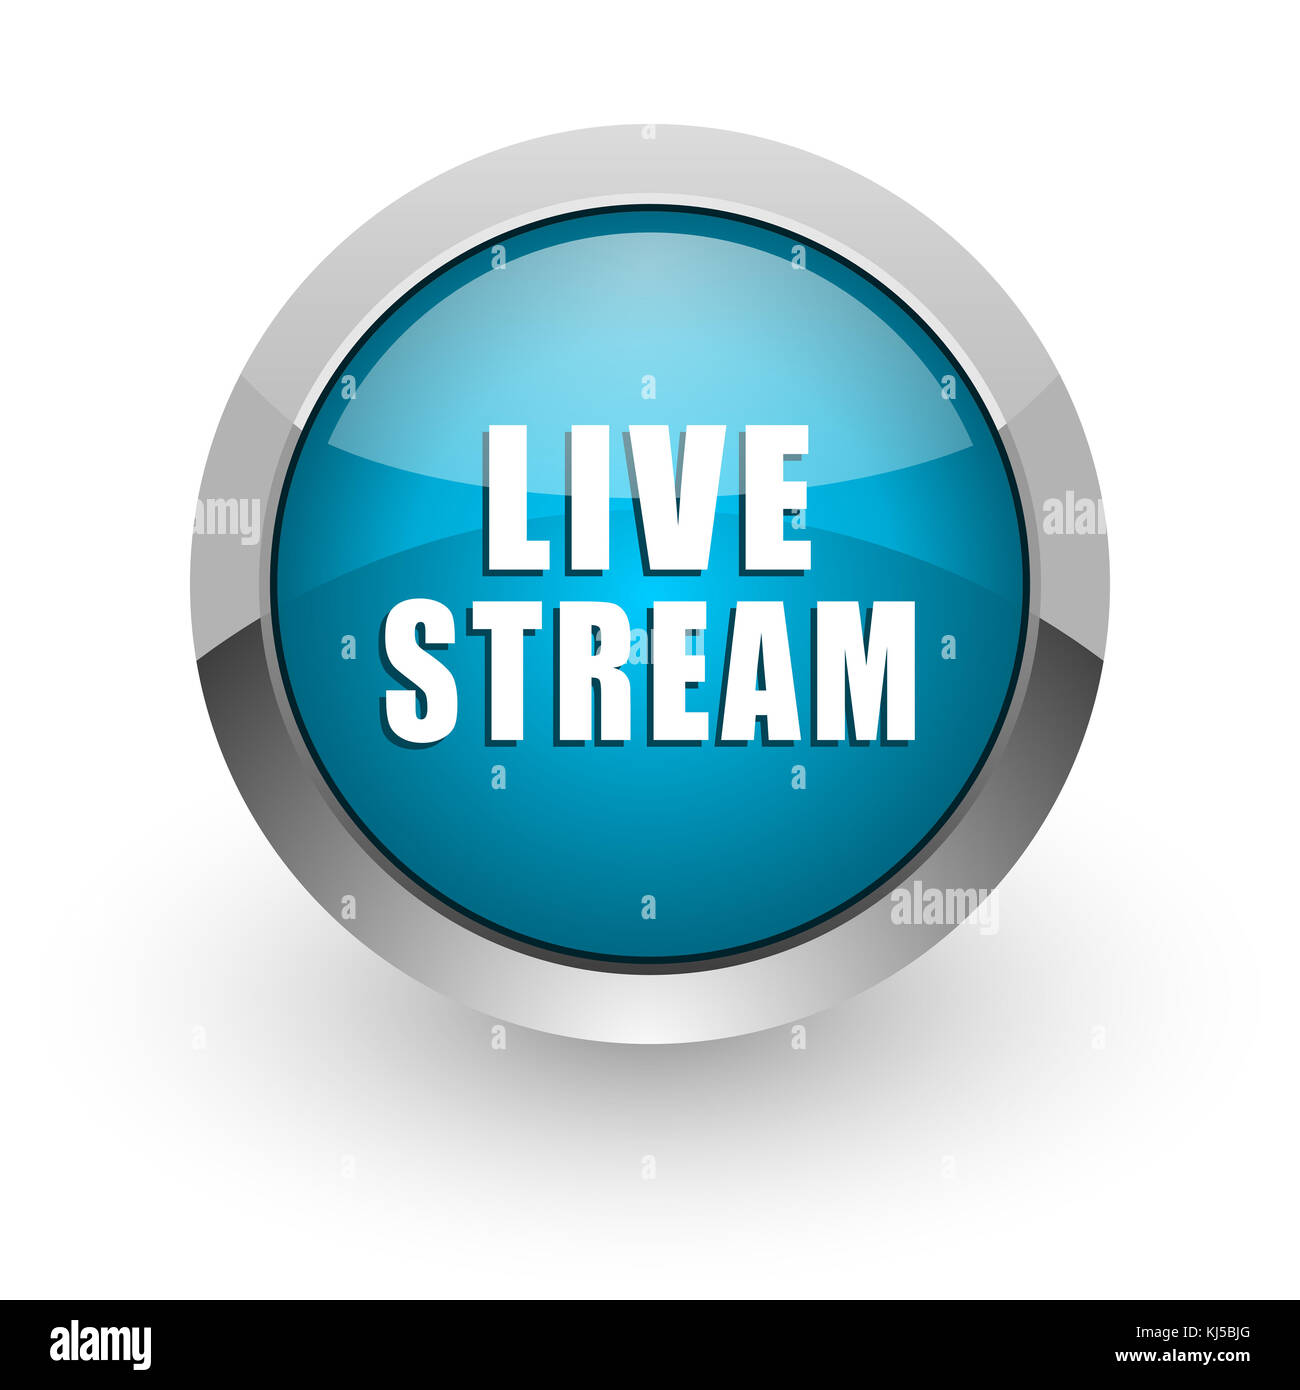 Live stream blue silver metallic chrome border web and mobile phone icon on white background with shadow - Stock Image